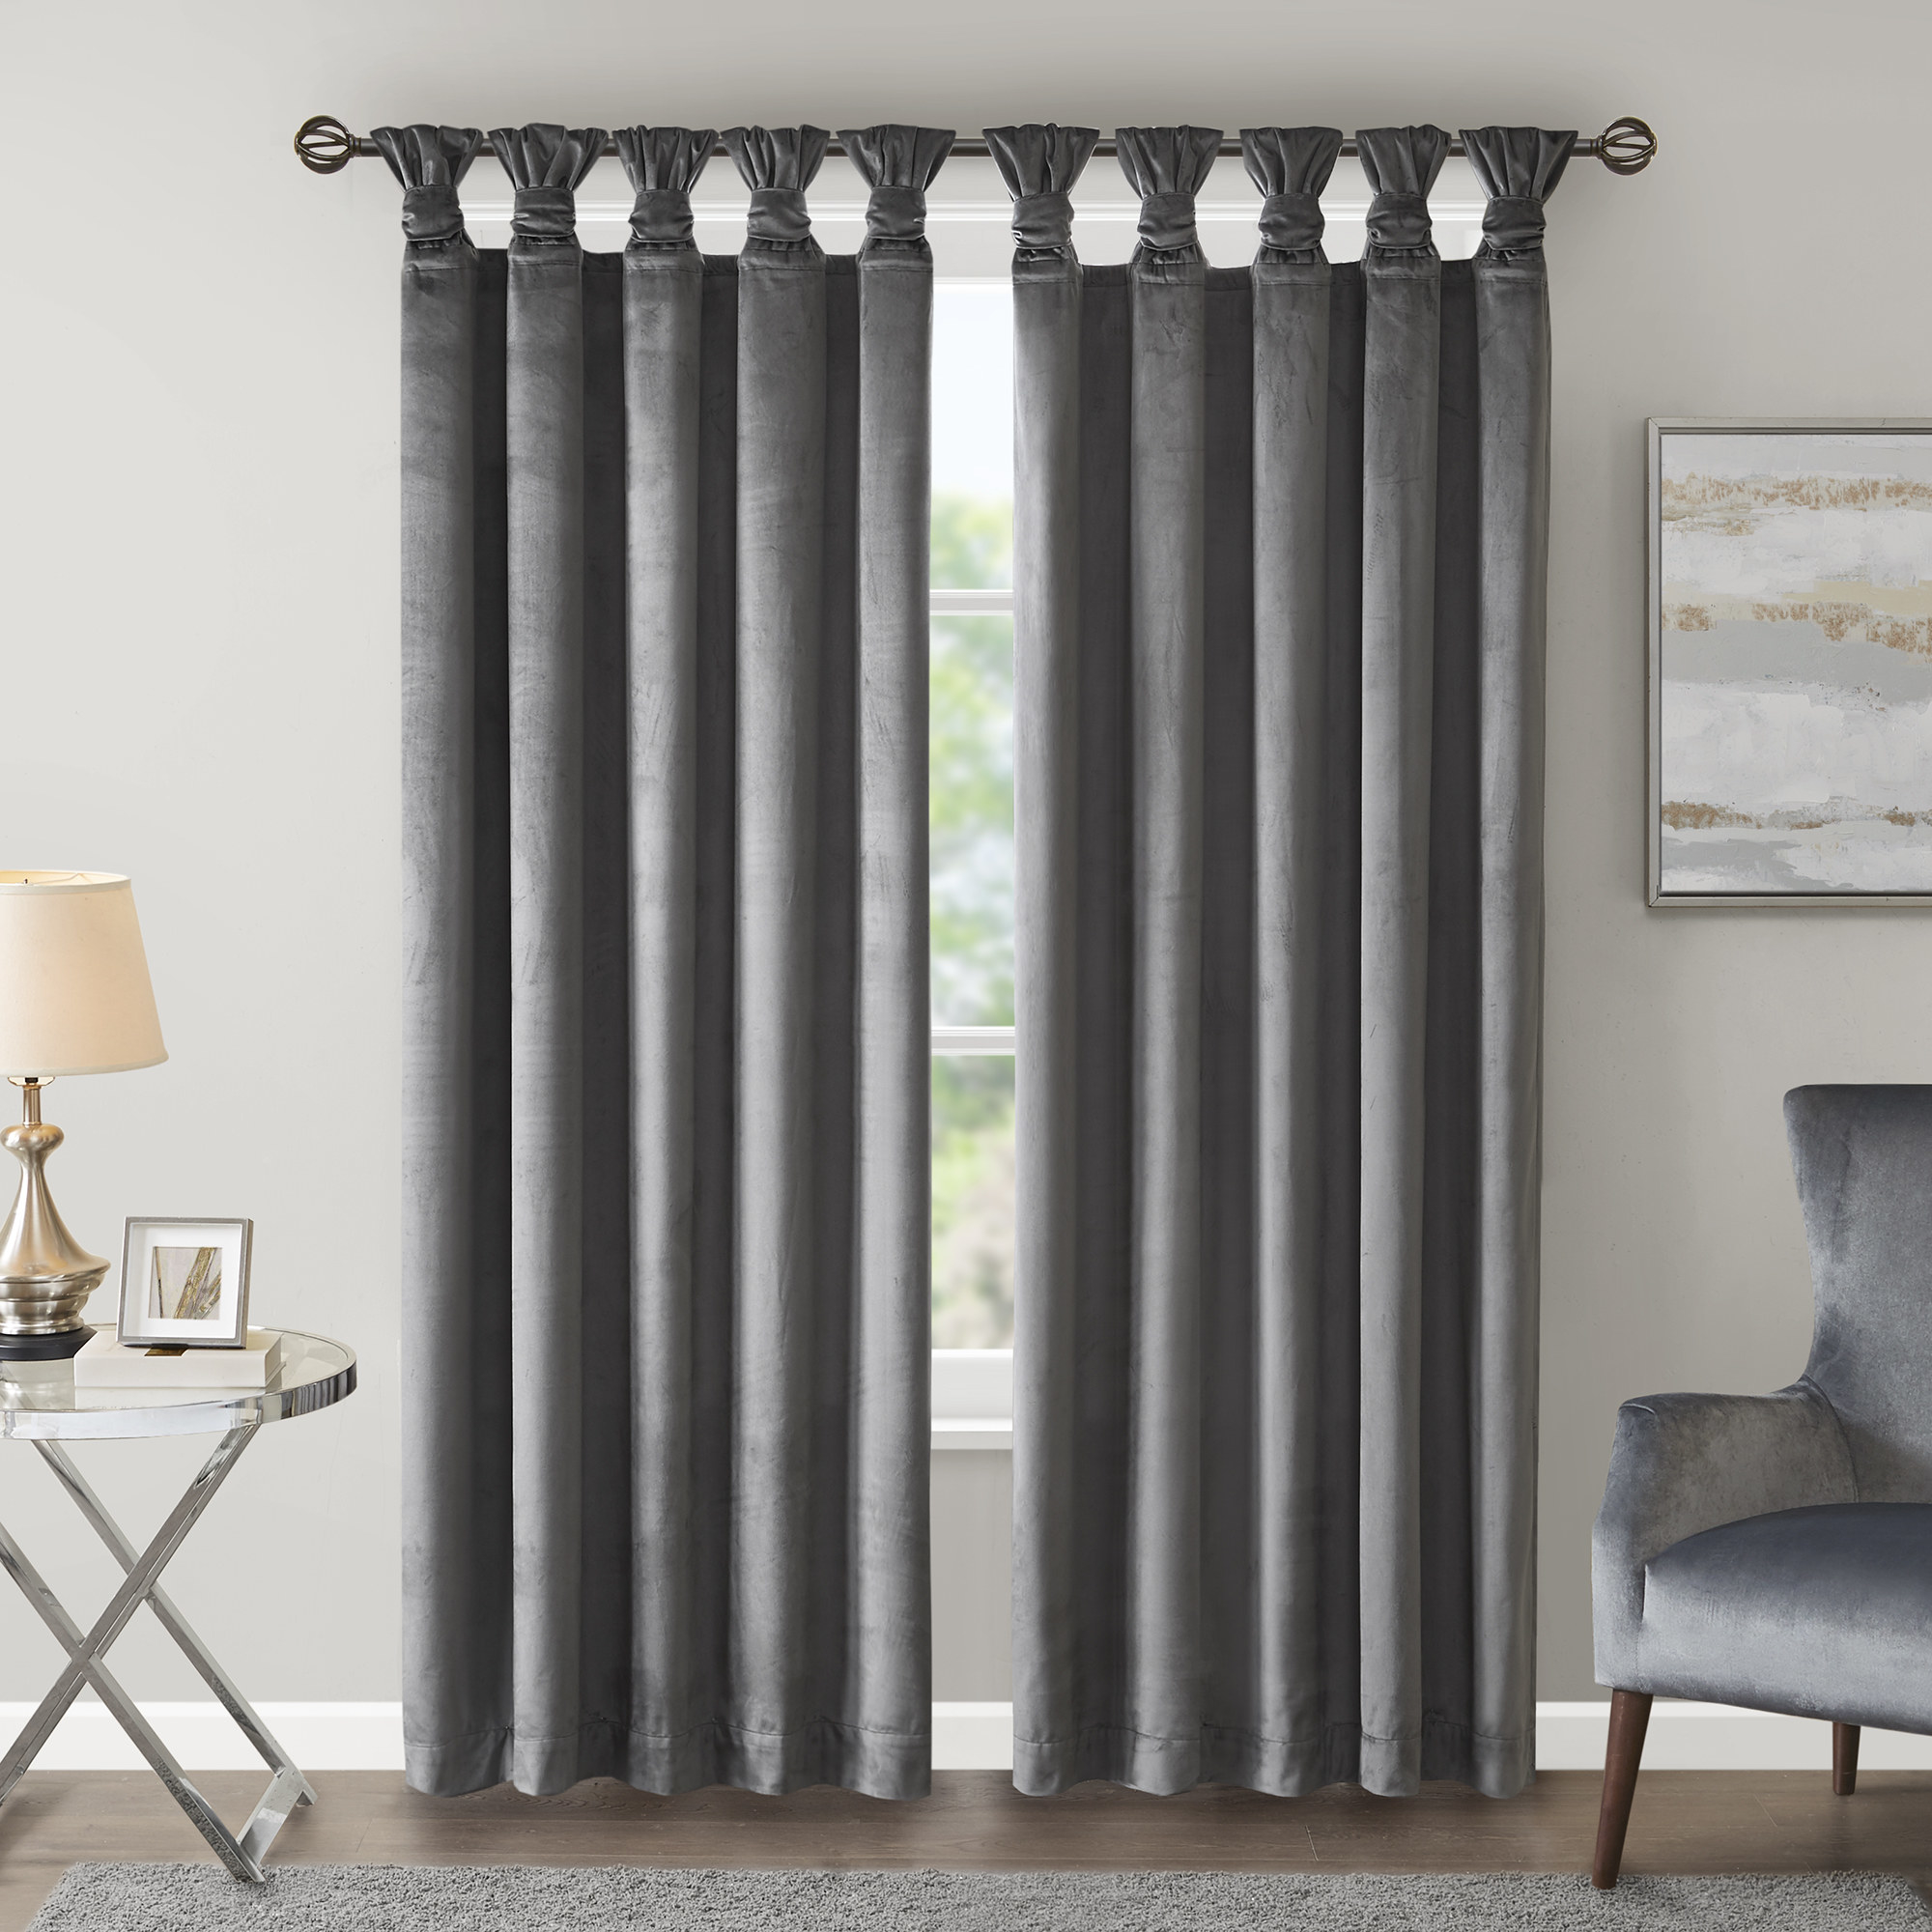 silky curtains styled in a living room